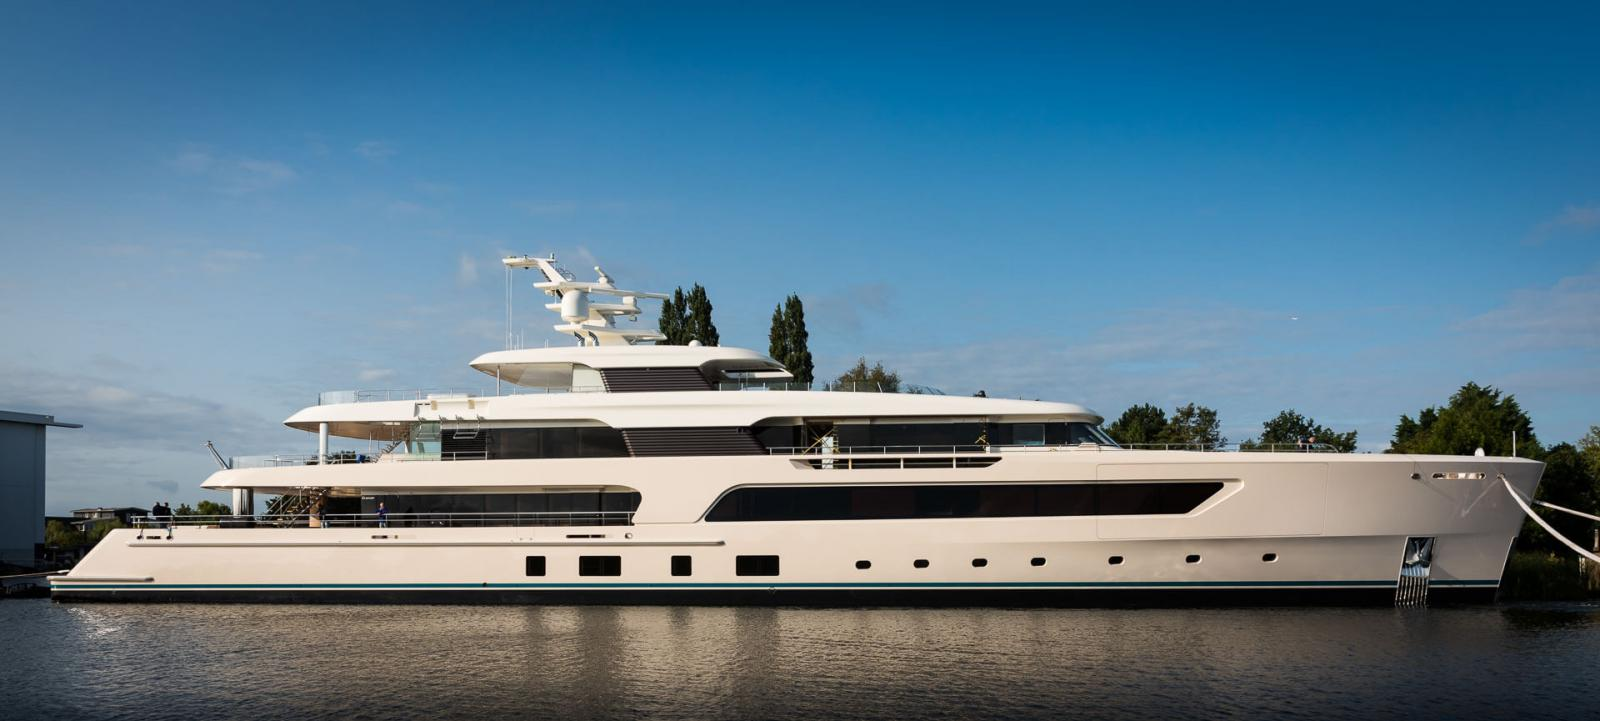 Feadship Superyacht Hull 696 - Side View